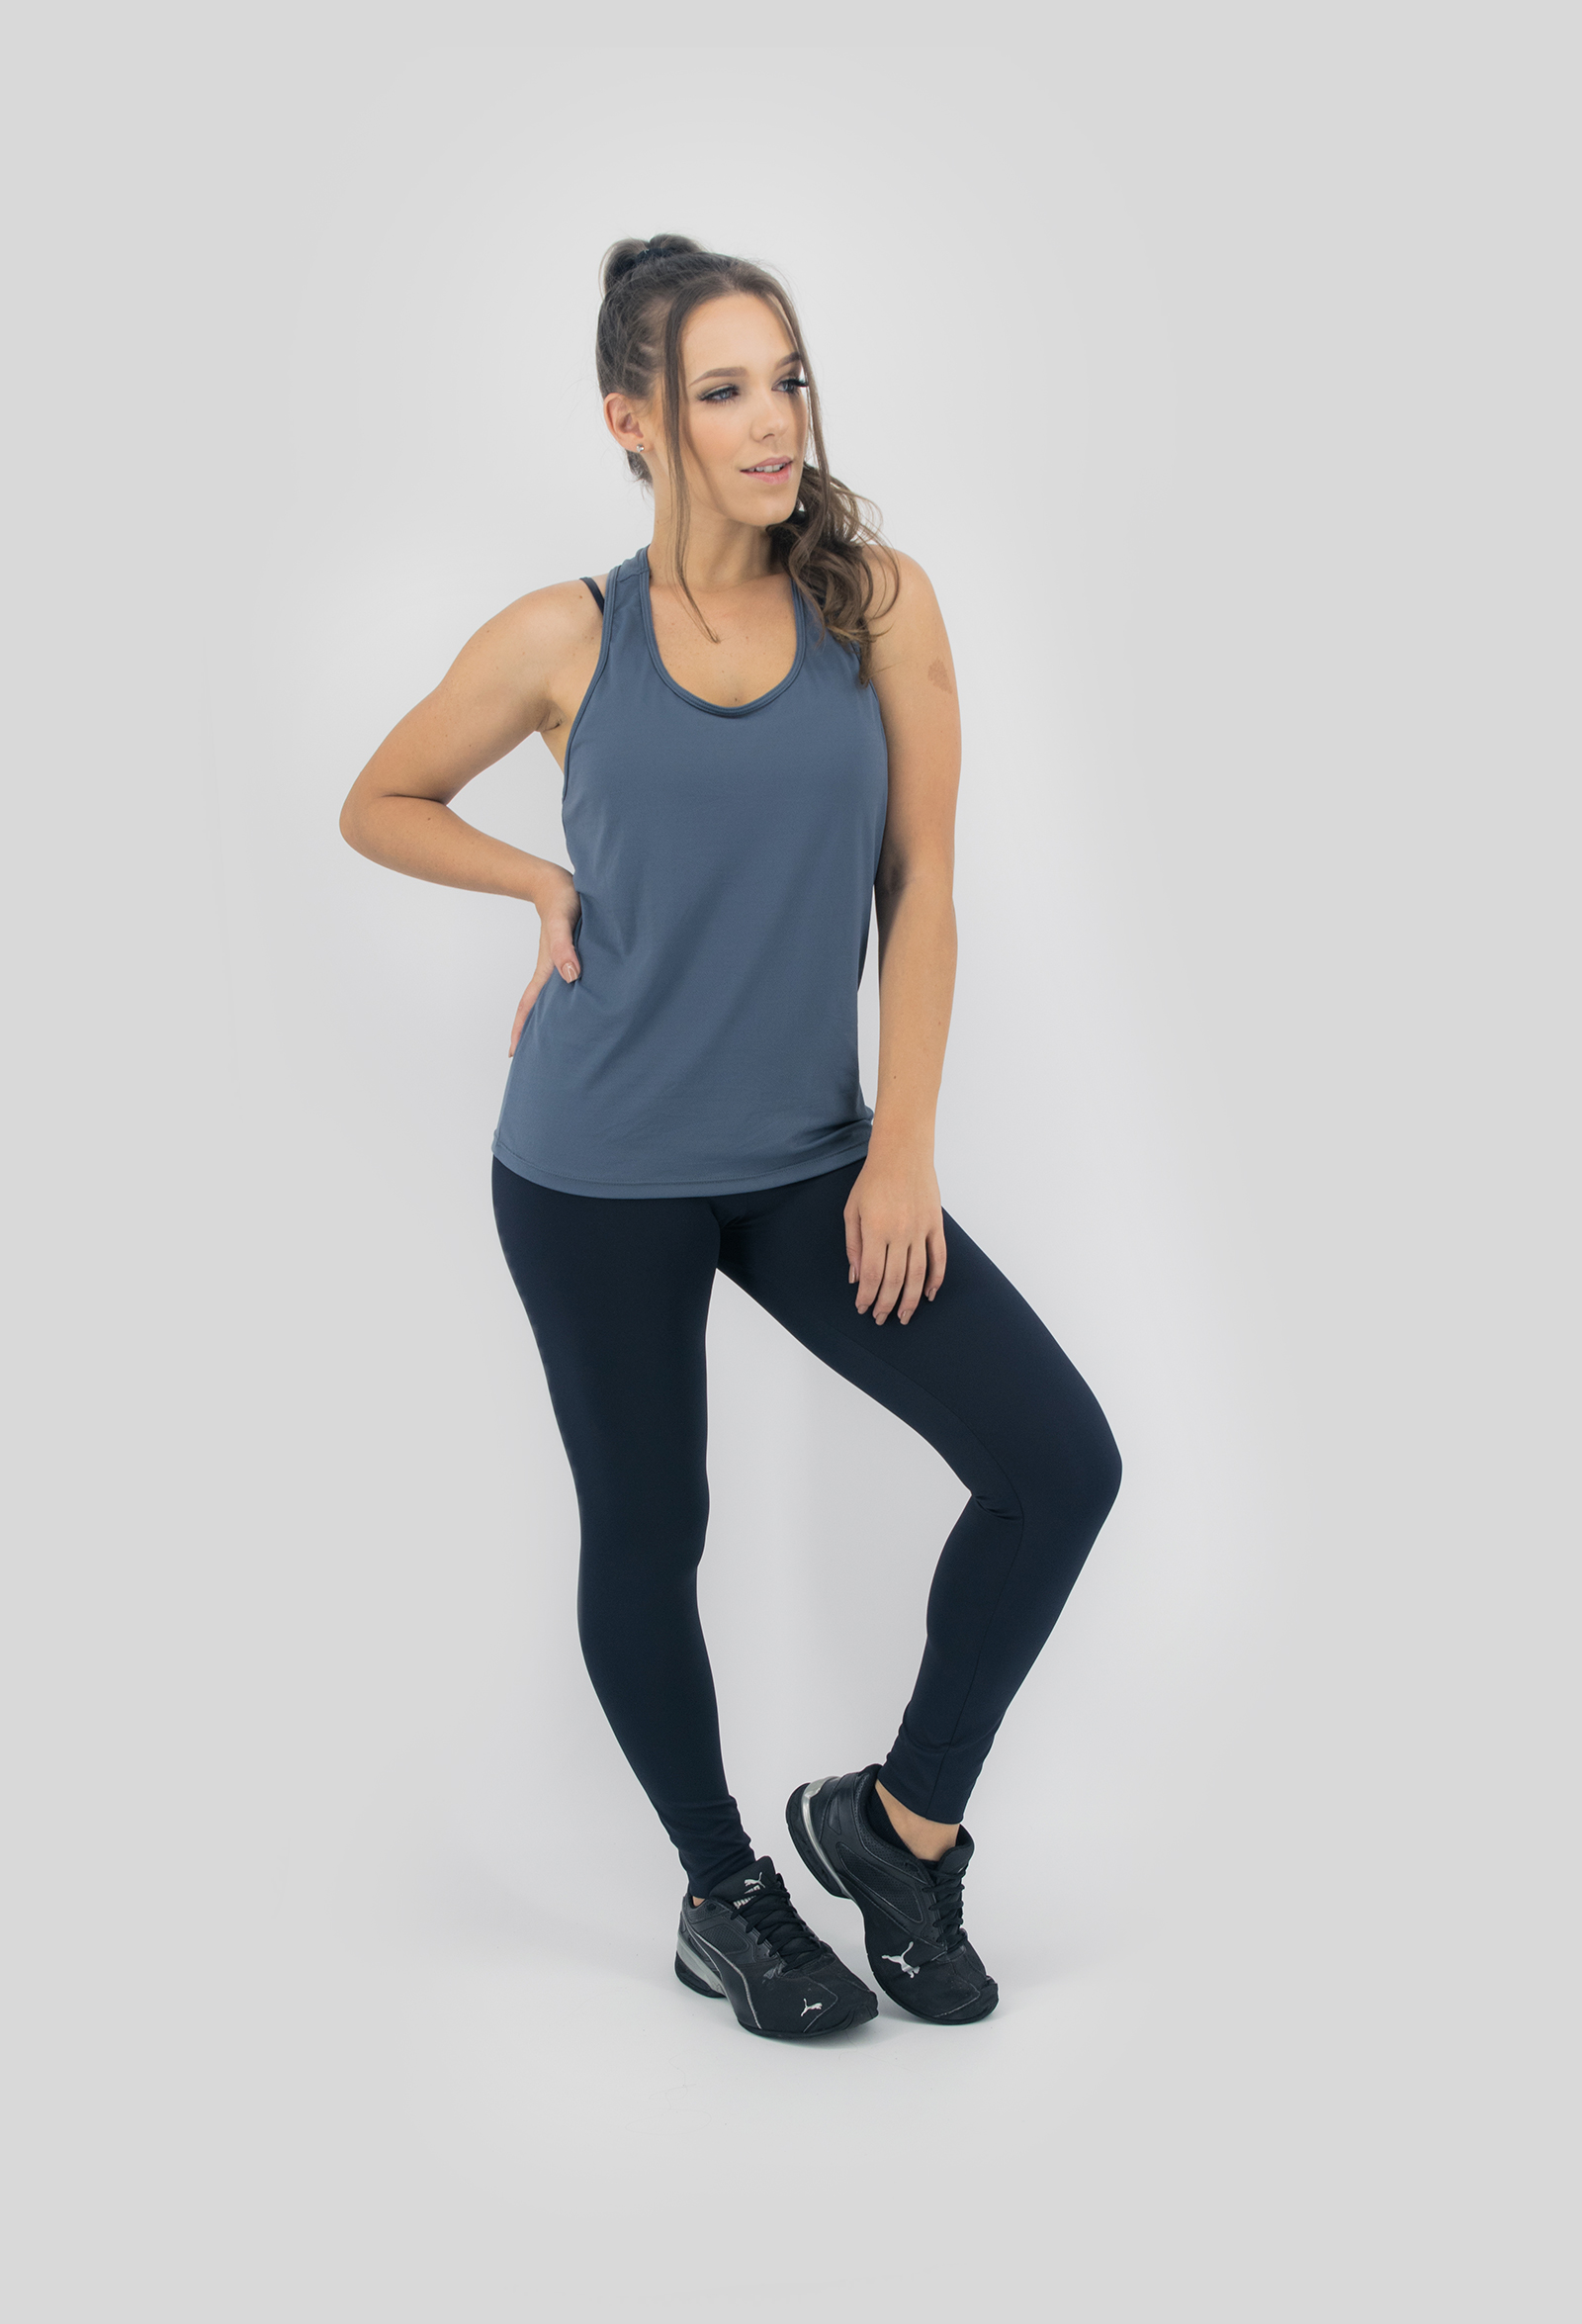 Regata NKT Chumbo, Coleção Move Your Body - NKT Fitwear Moda Fitness